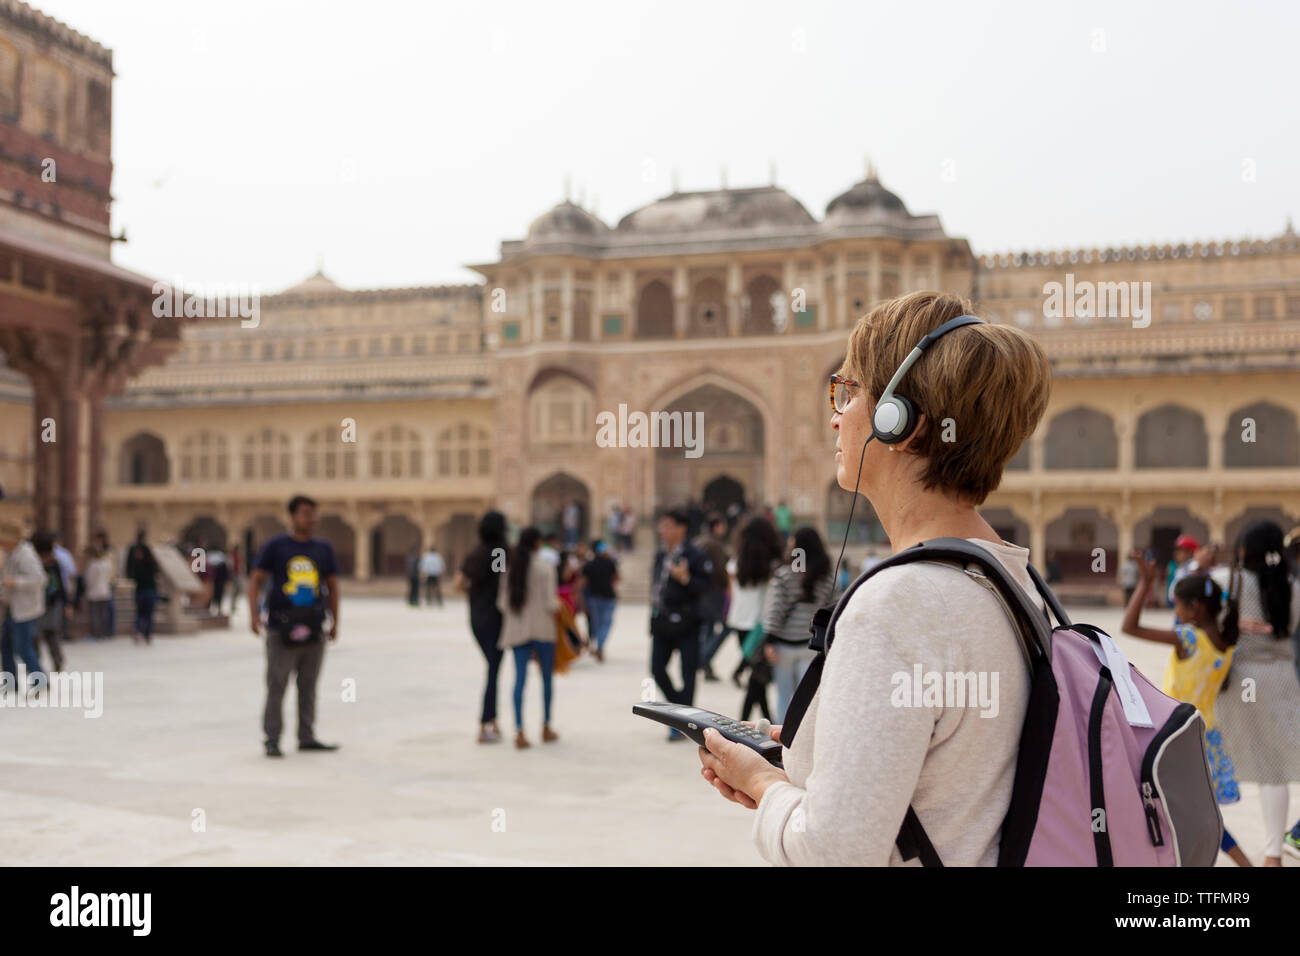 50 60 years old caucasian tourist woman at Amber Fort, Jaipur India - Stock Image